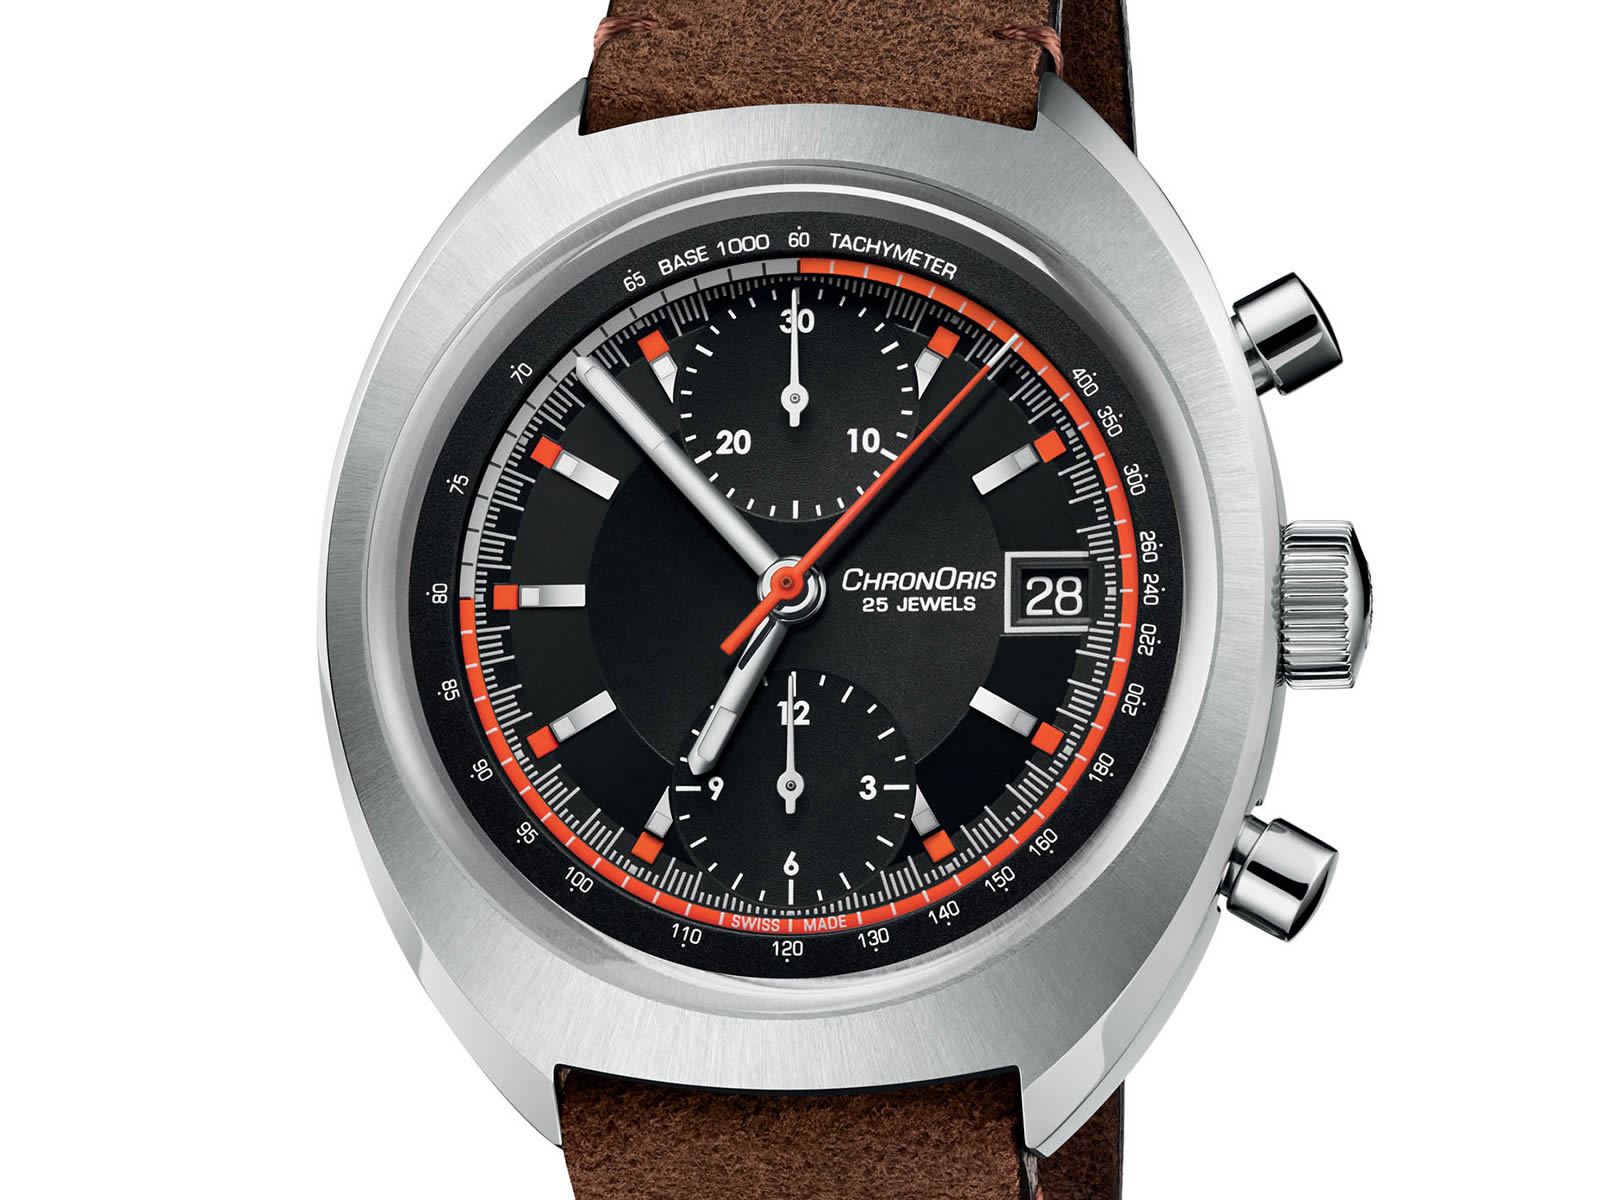 01-673-7739-4034-set-ls-oris-chronoris-limited-edition-3-.jpg